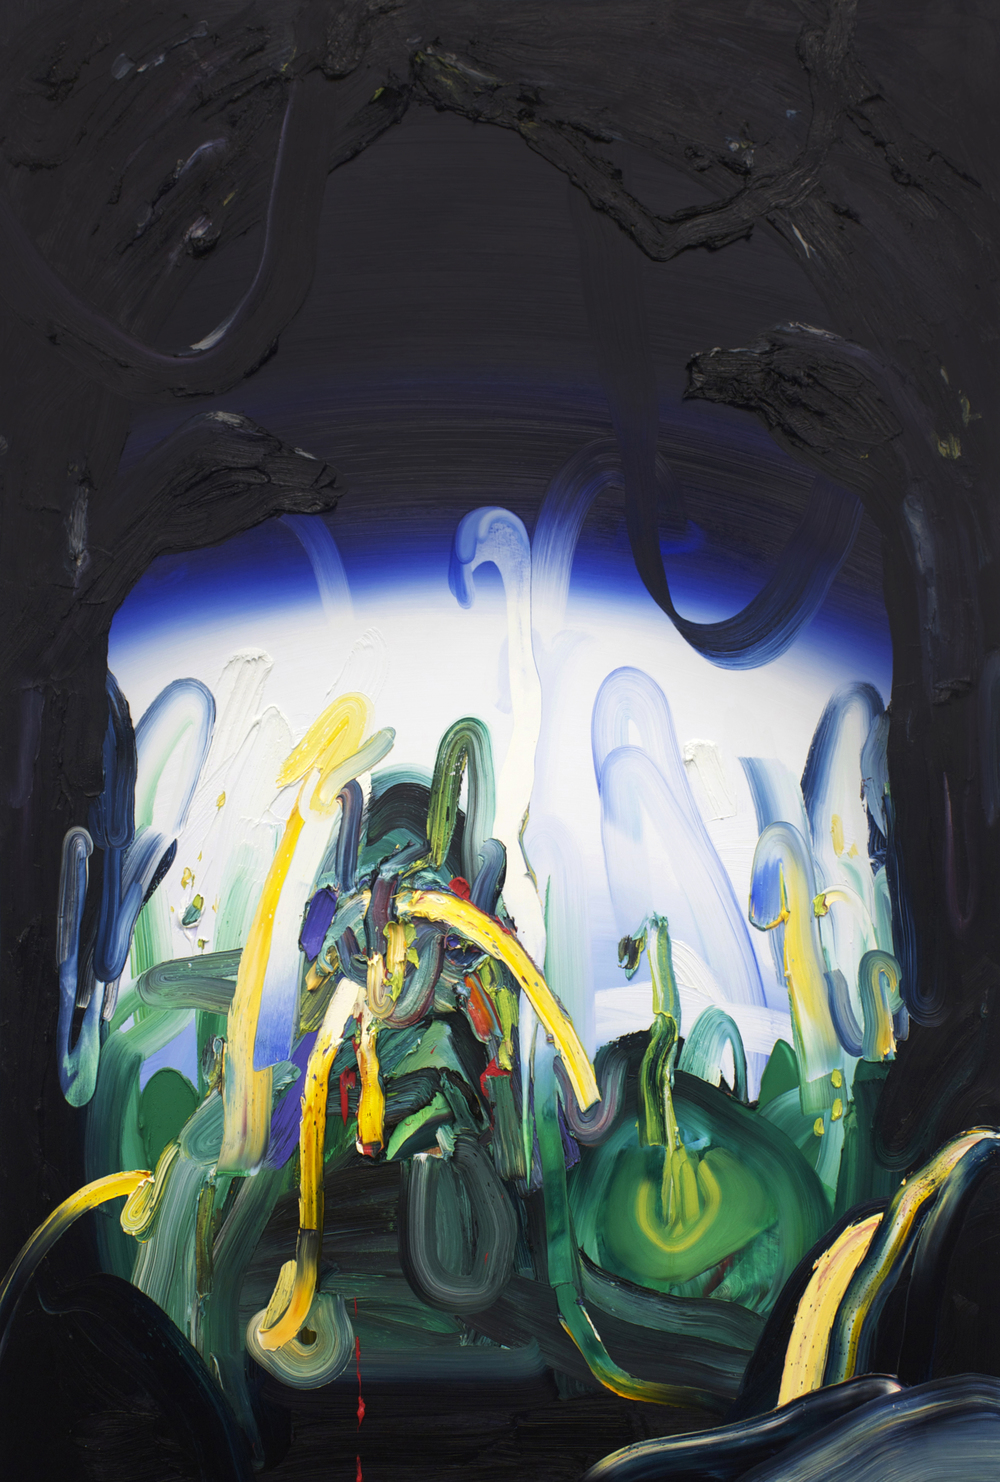 Otherworld / oil on canvas / 72 x 48 inches